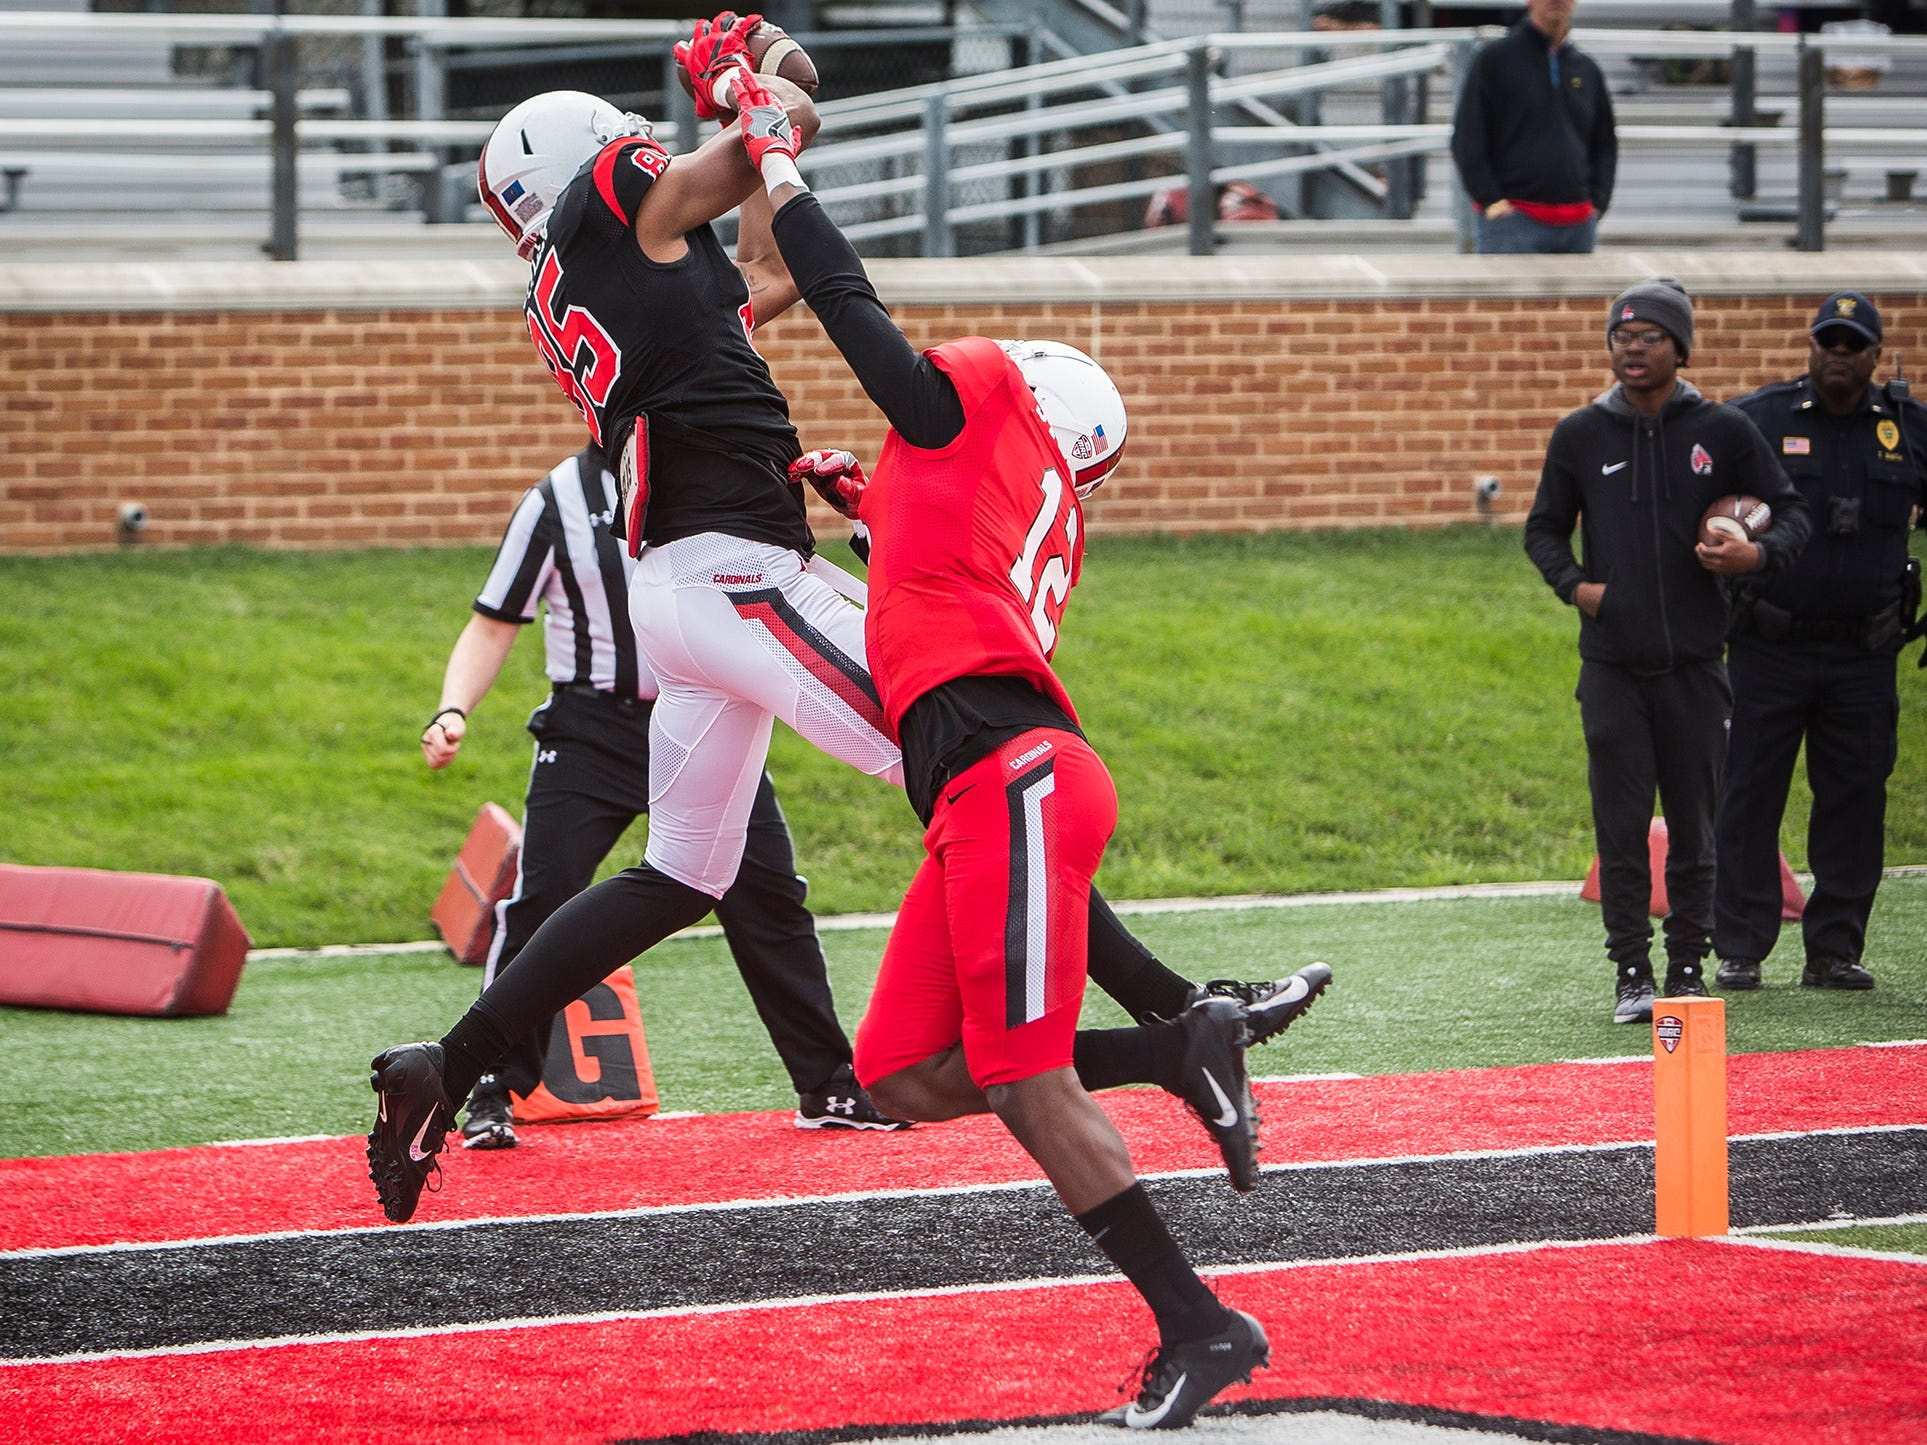 Ball State's Yo'Heinz Tyler makes a touchdown catch during the annual Spring Game at Scheumann Stadium Saturday, April 13, 2019.